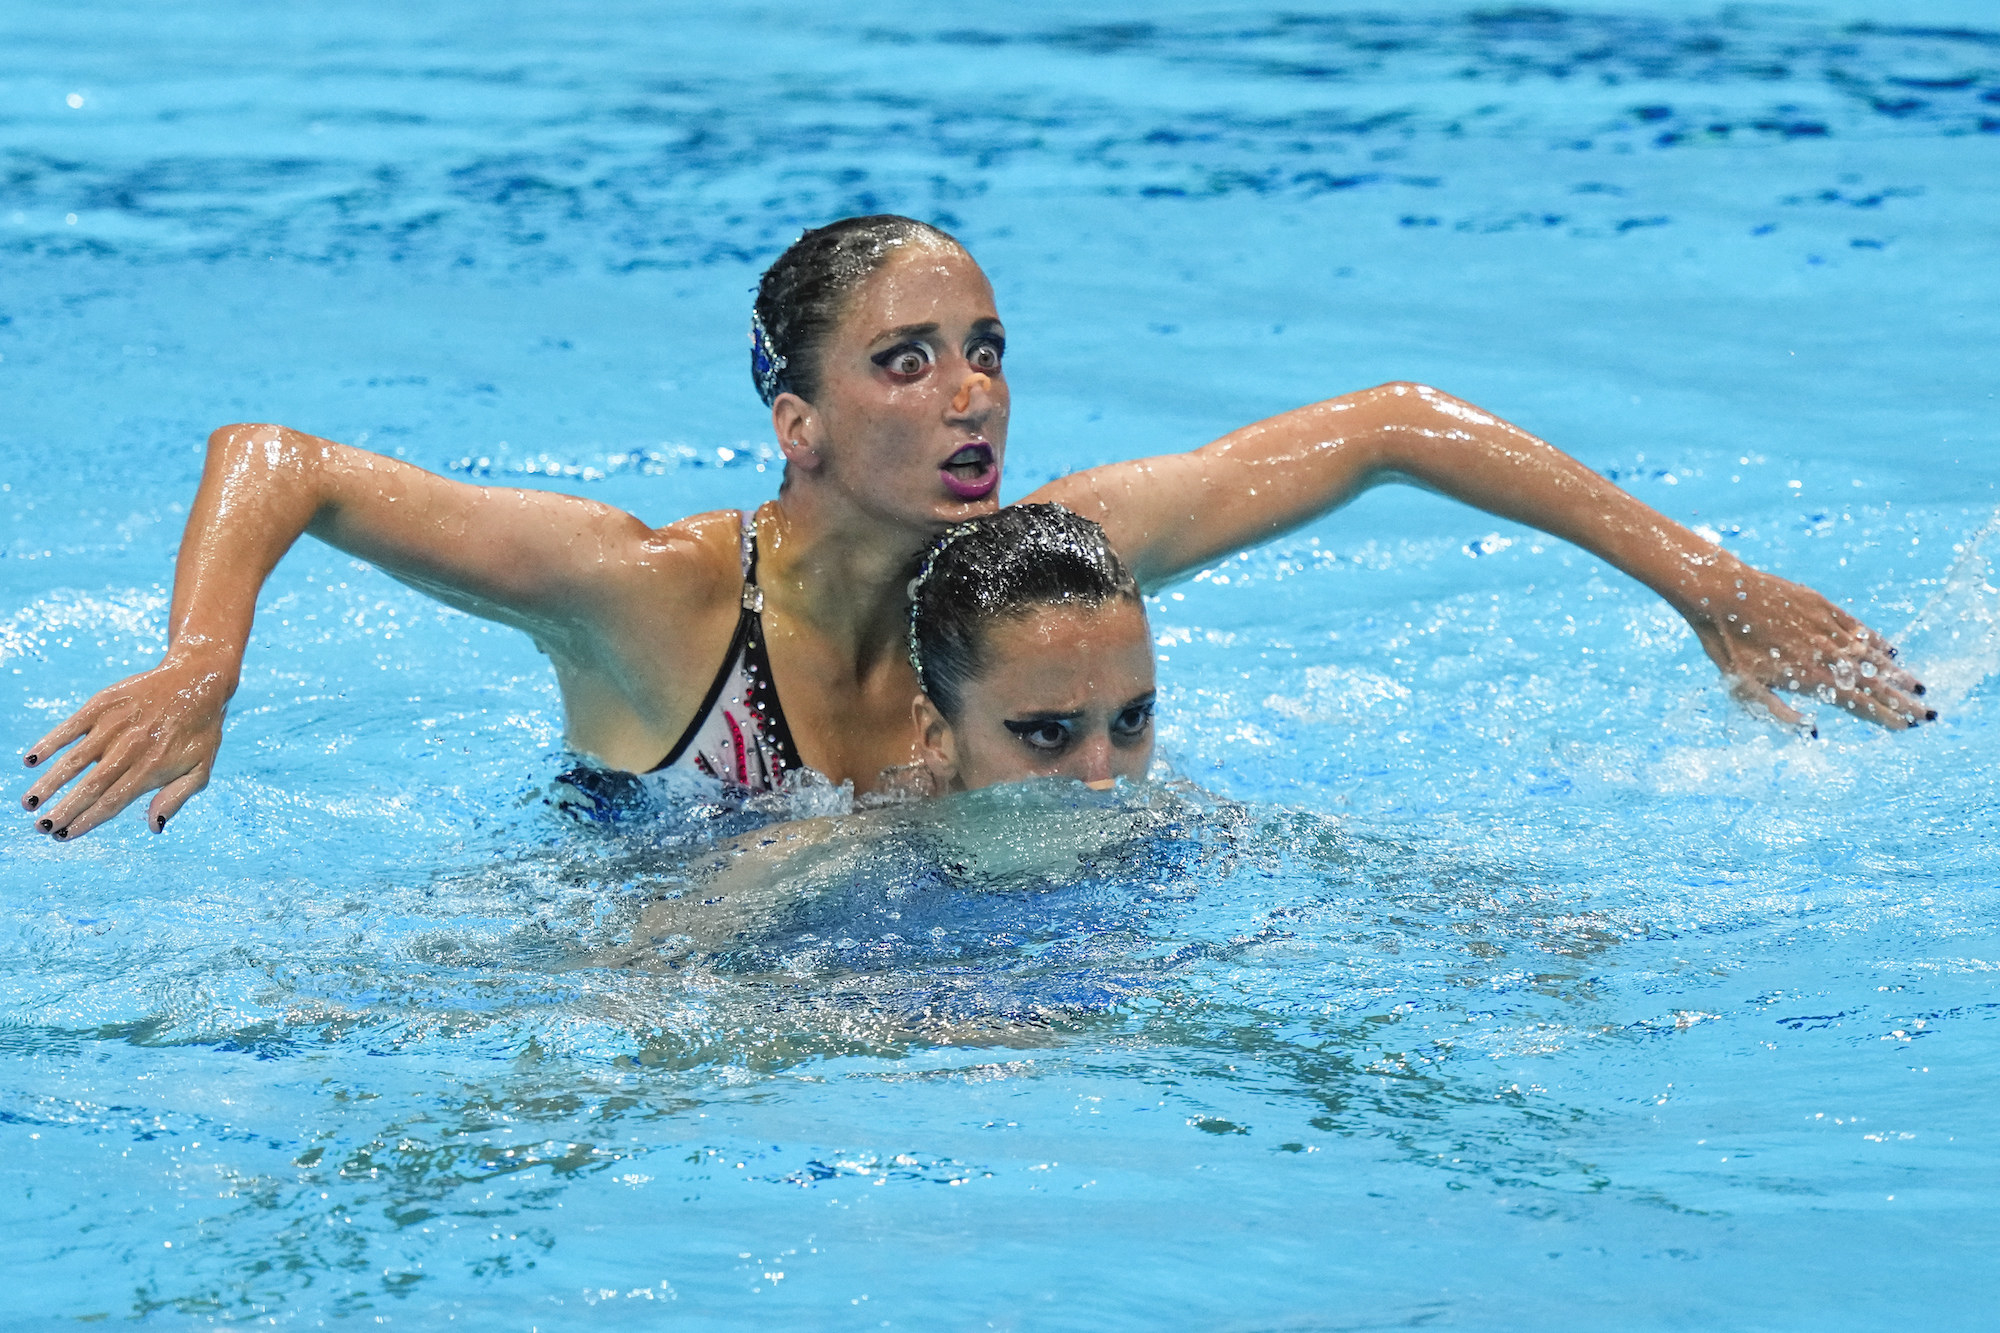 One swimmer stands behind another with their head above the other's in a pool